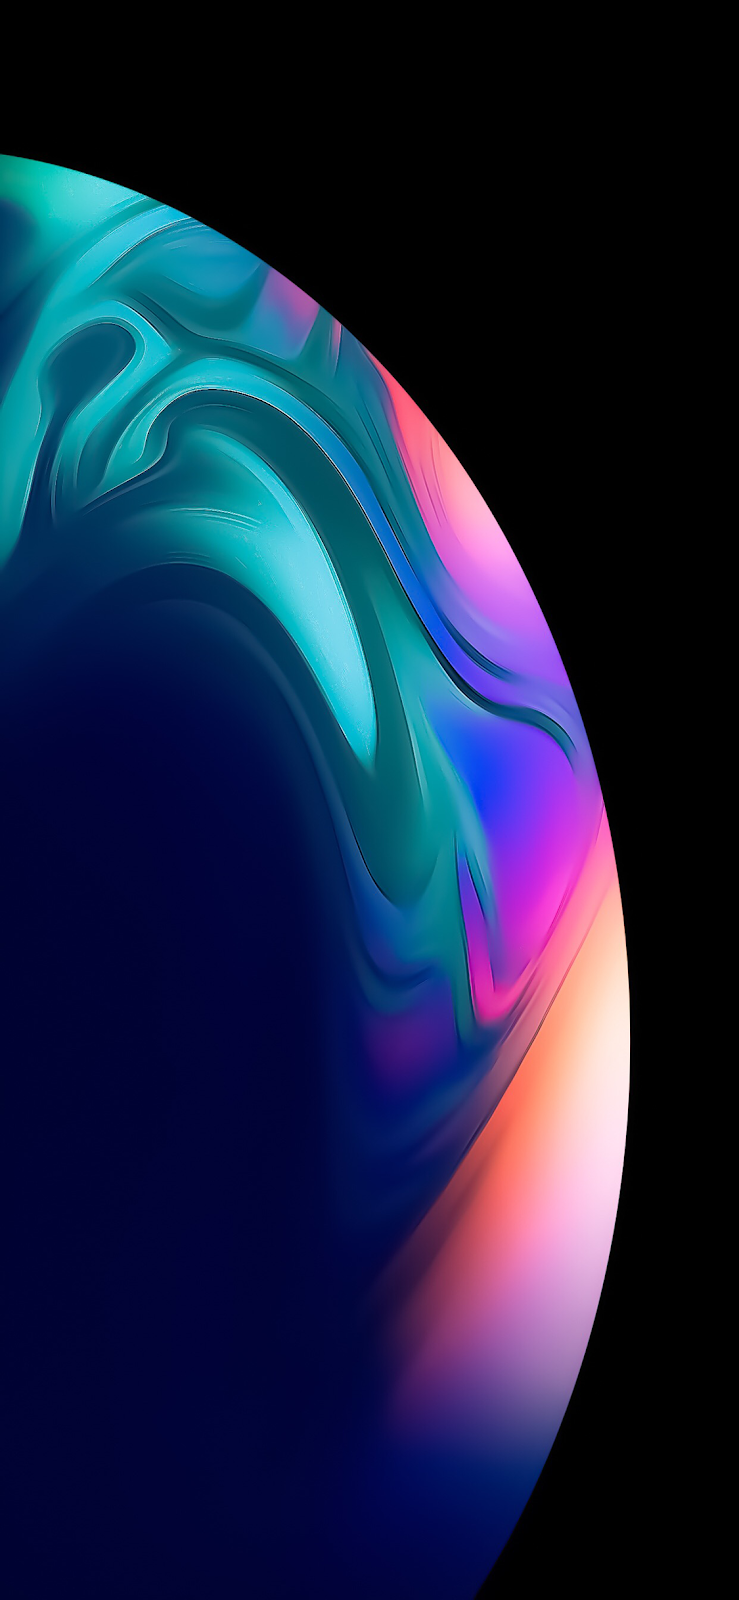 Planet By Ar72014 Iphone X Wallpaper Iphone Android Background Followme Iphone Lockscreen Wallpaper Iphone Wallpaper Video Oneplus Wallpapers